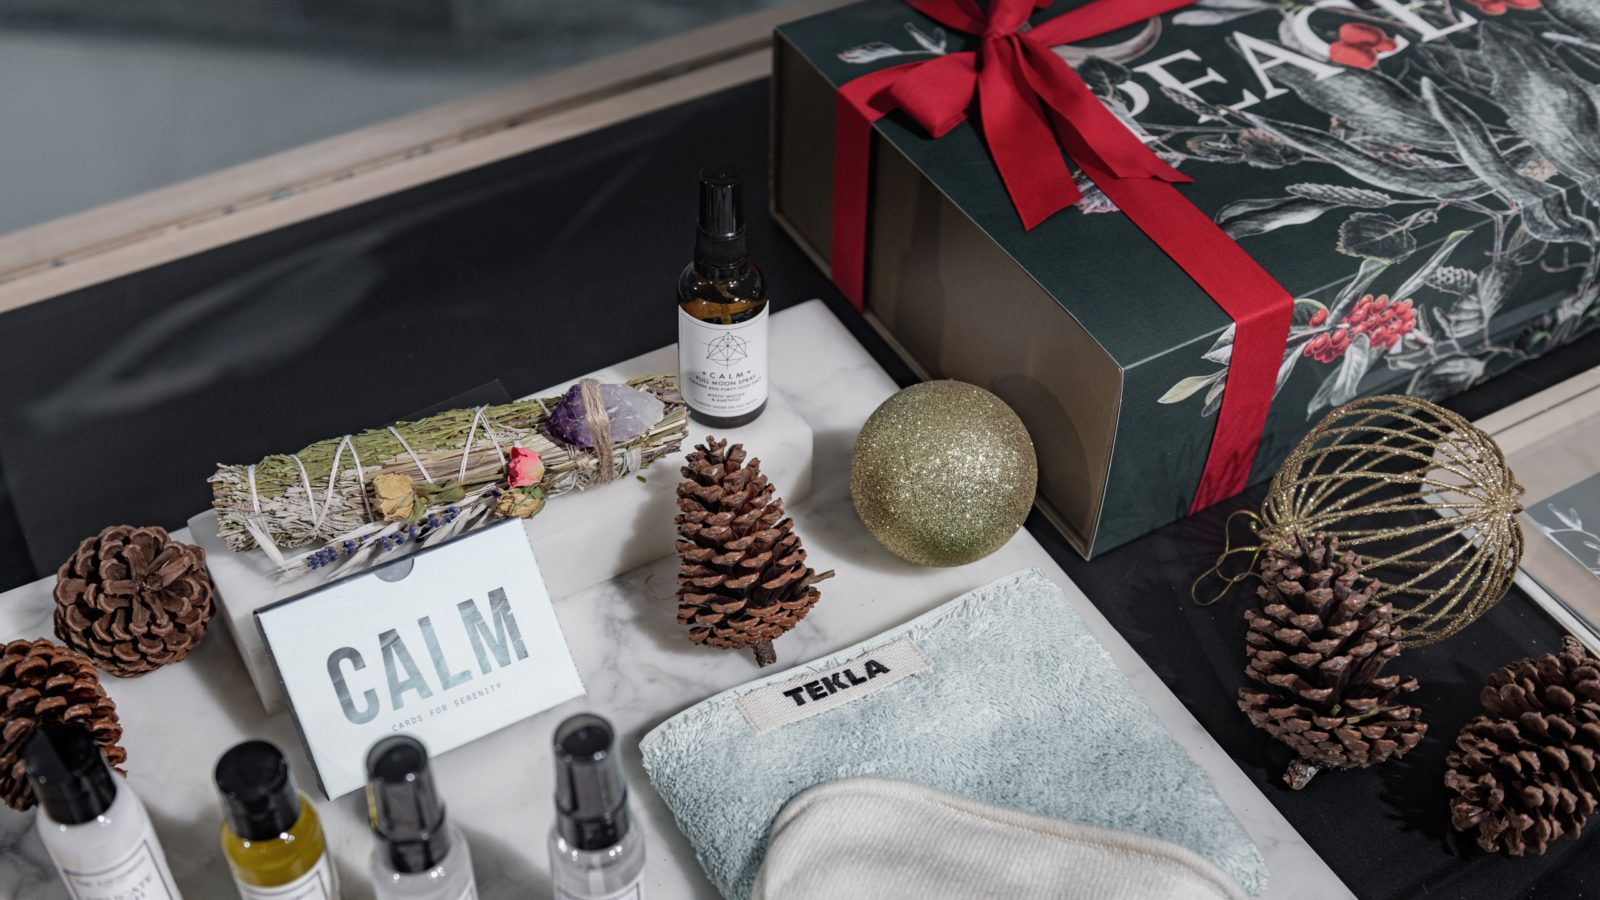 The ultimate wellness kits to give the gift of self-care this Christmas